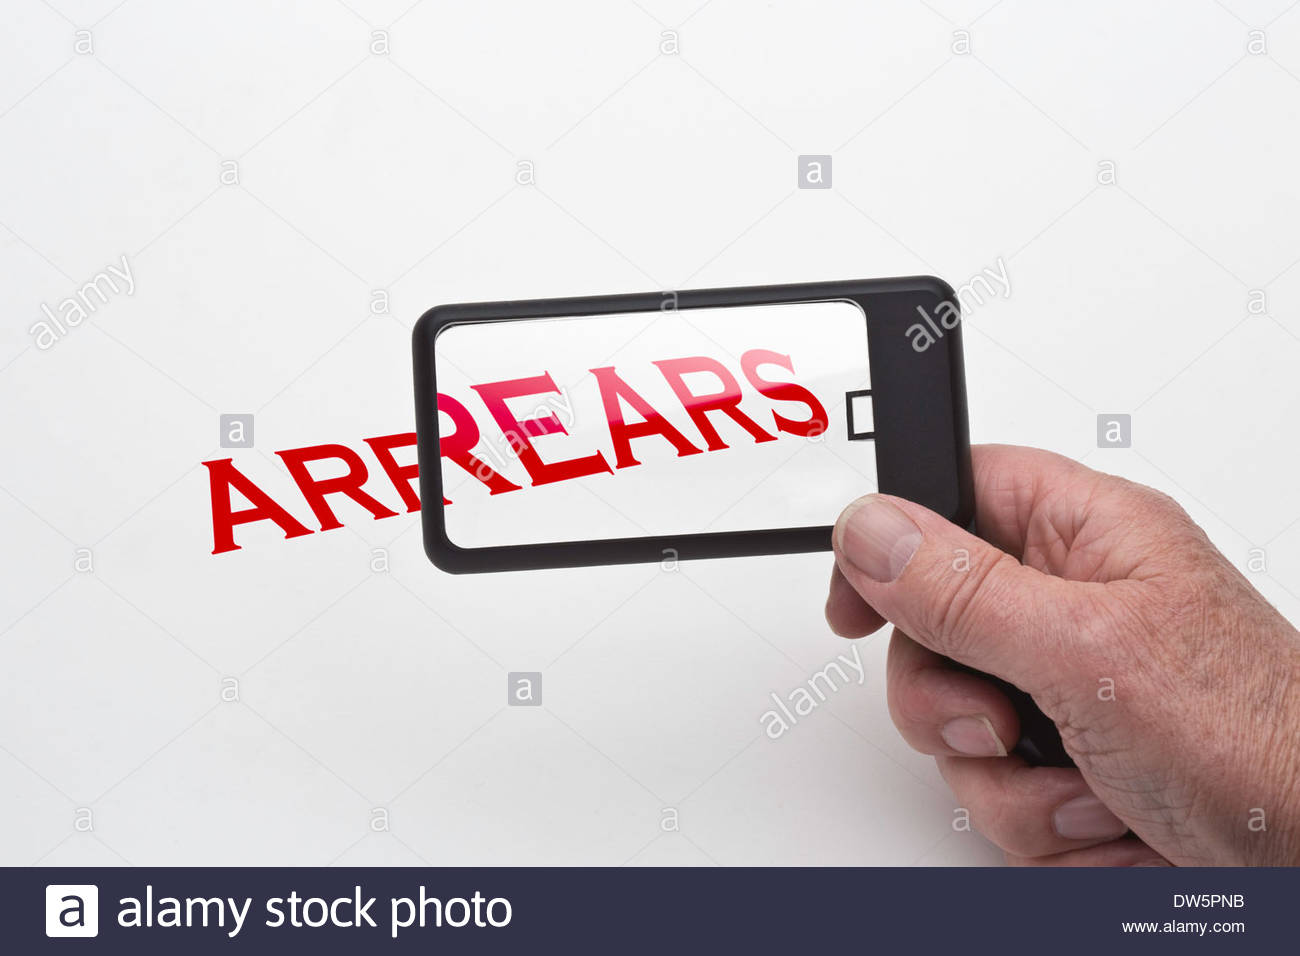 Mans hand holding a magnifying glass showing the word arrears being magnified. - Stock Image